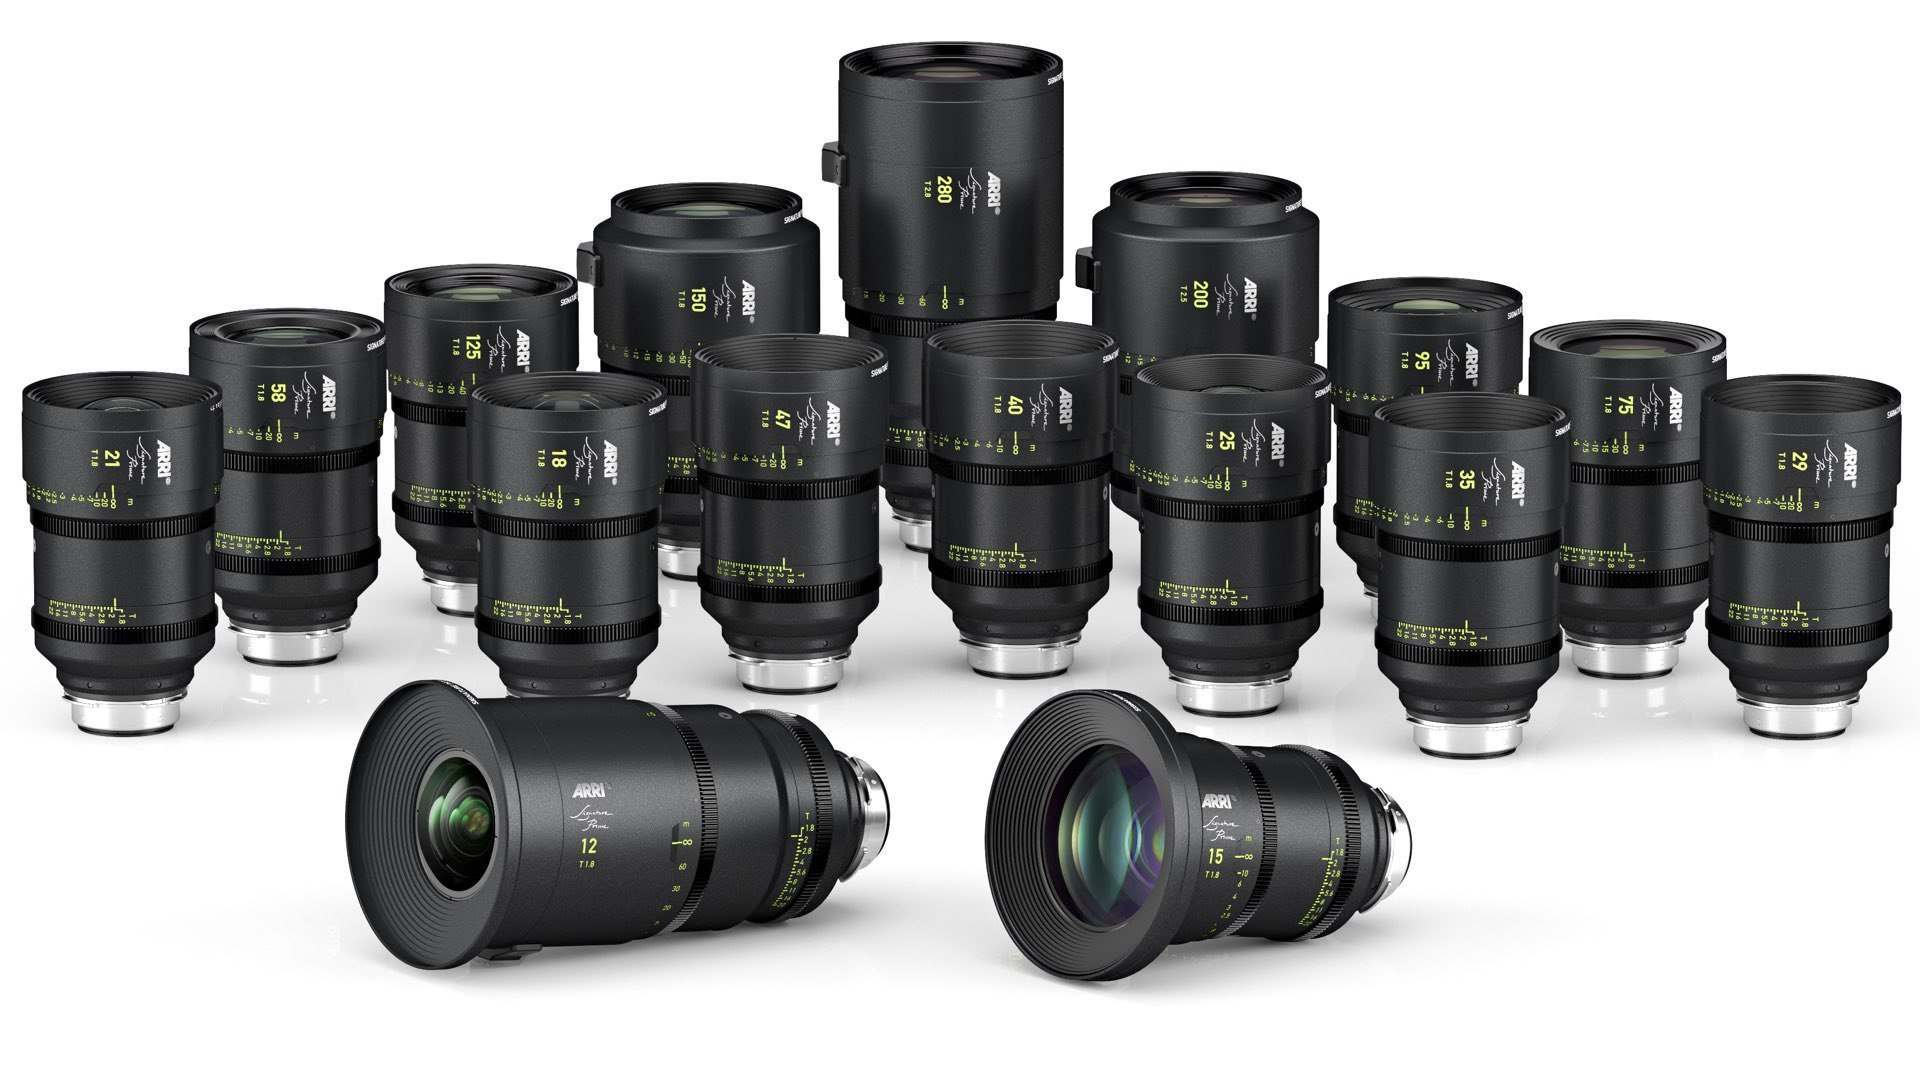 Arri Signature Prime full frame lenses